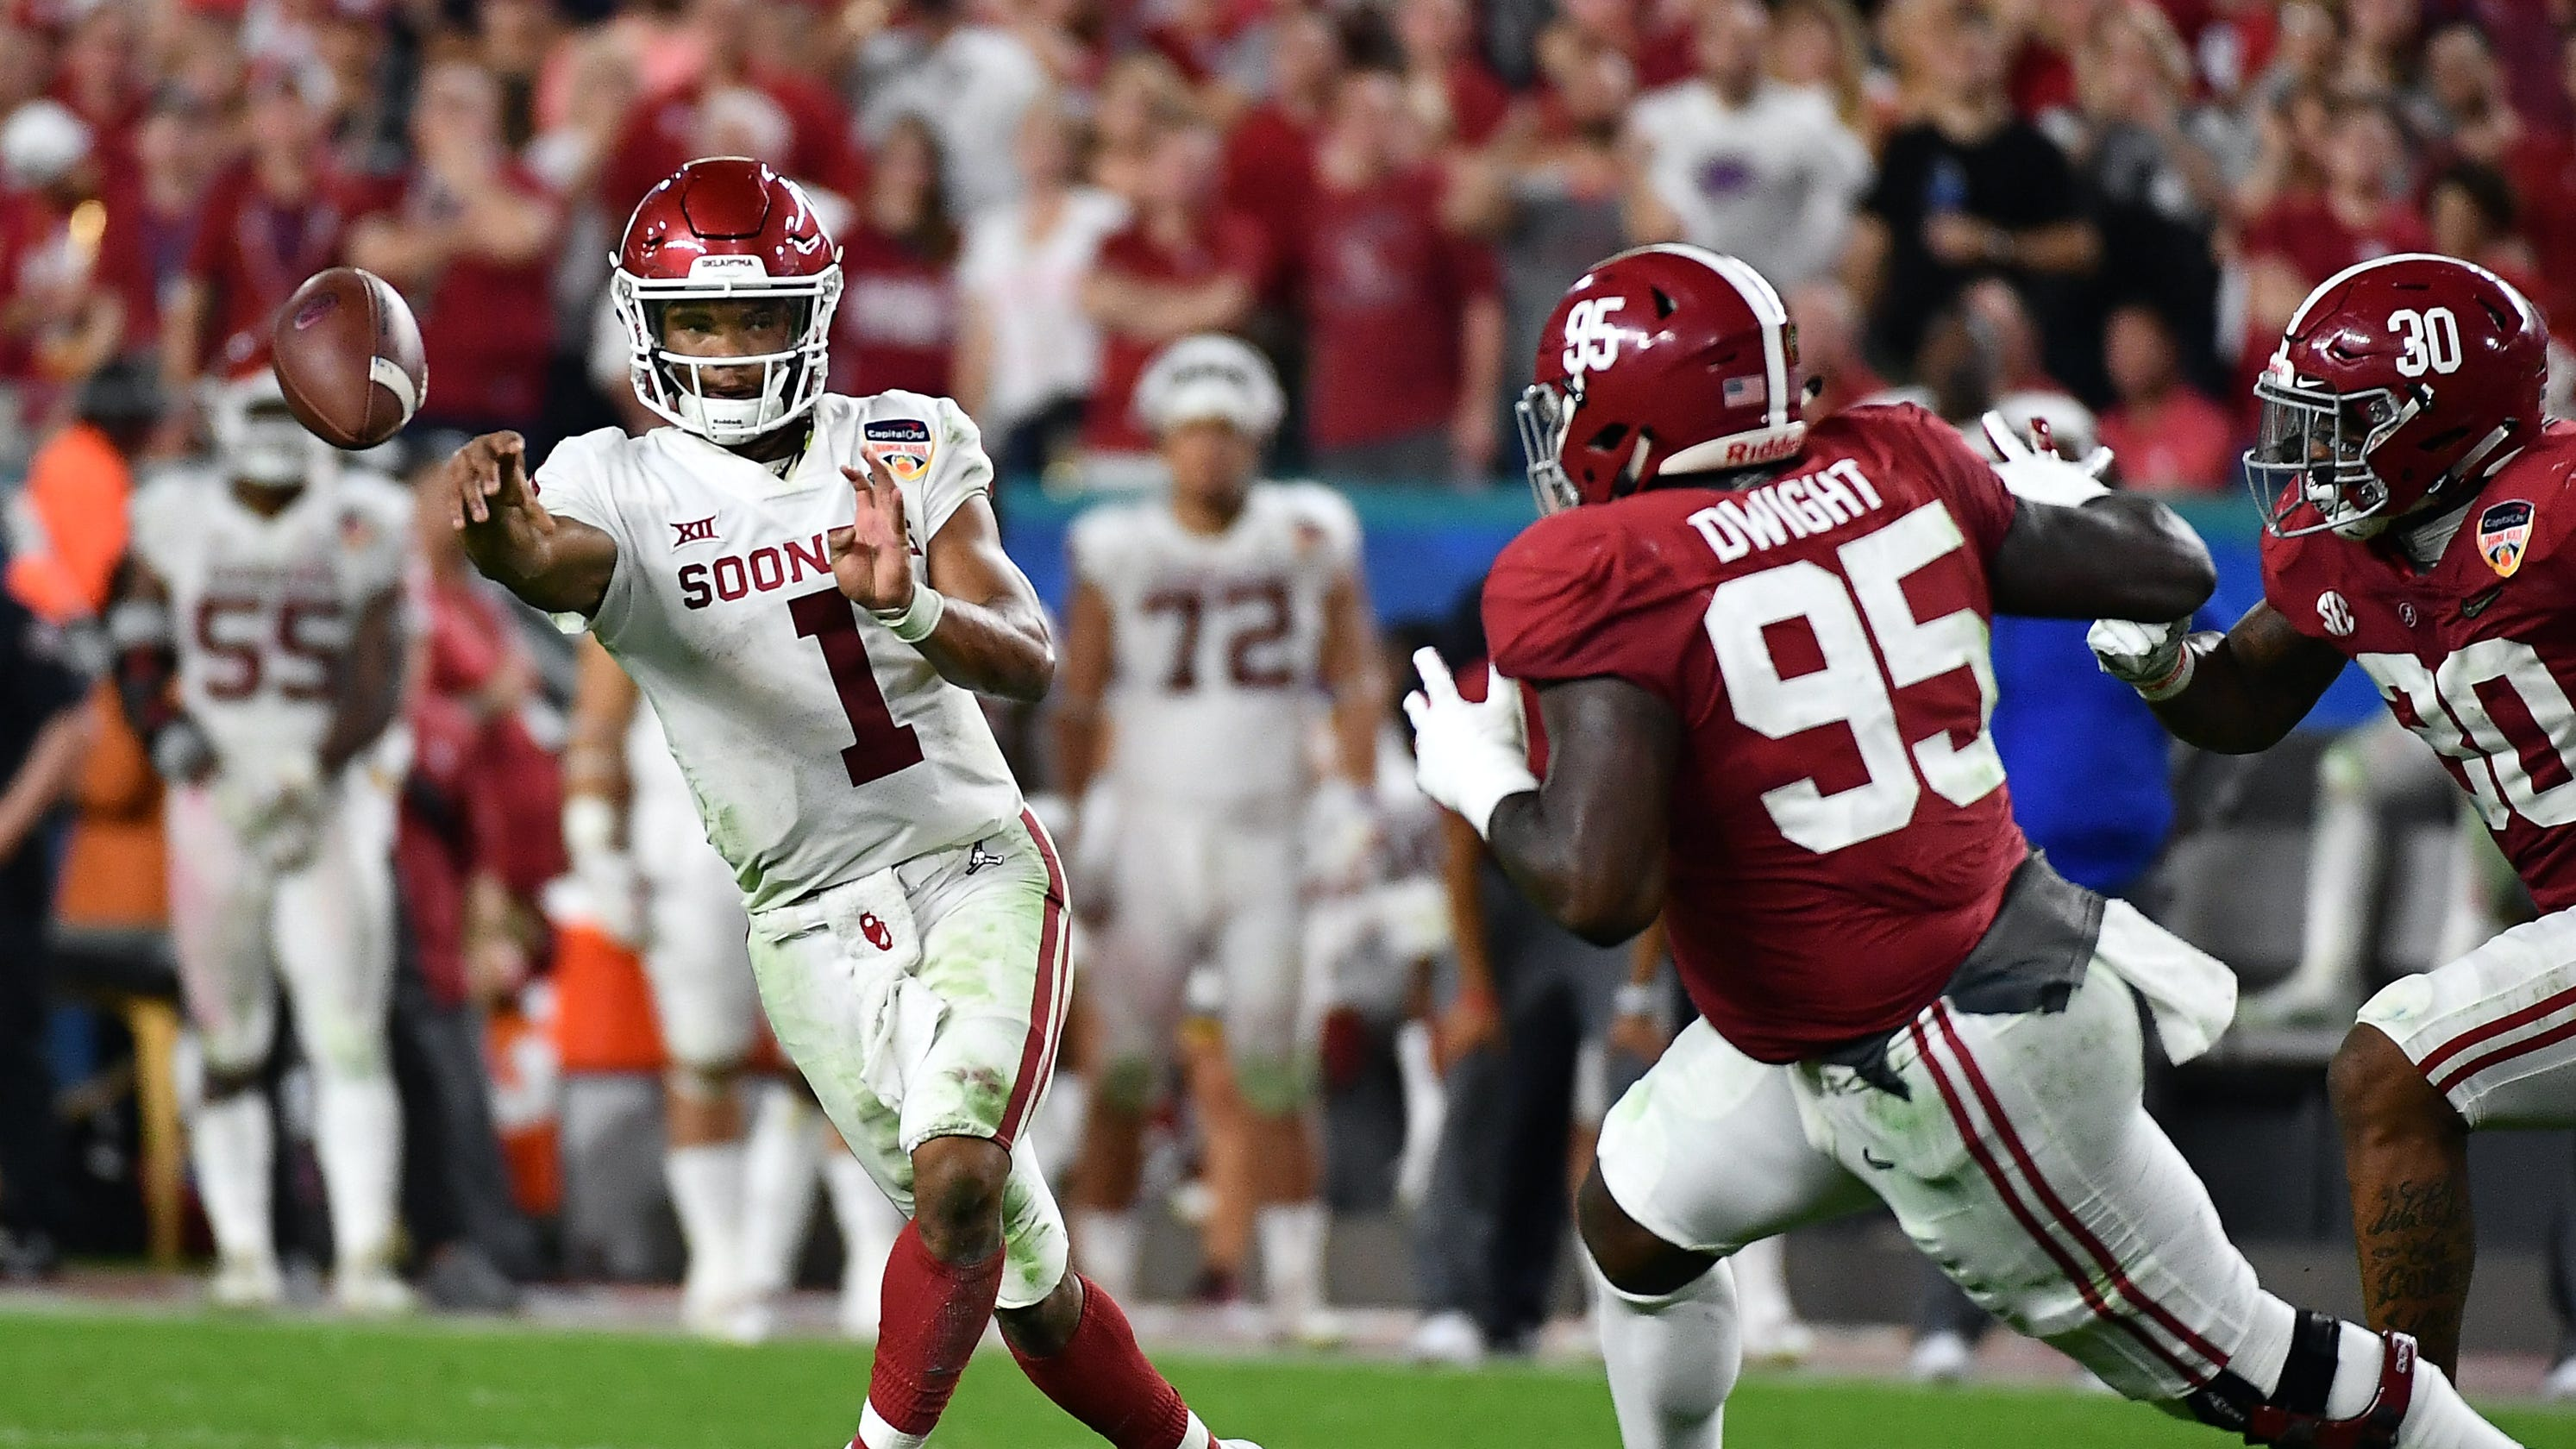 Kyler Murray 2019 NFL draft projections: NFL mock drafts